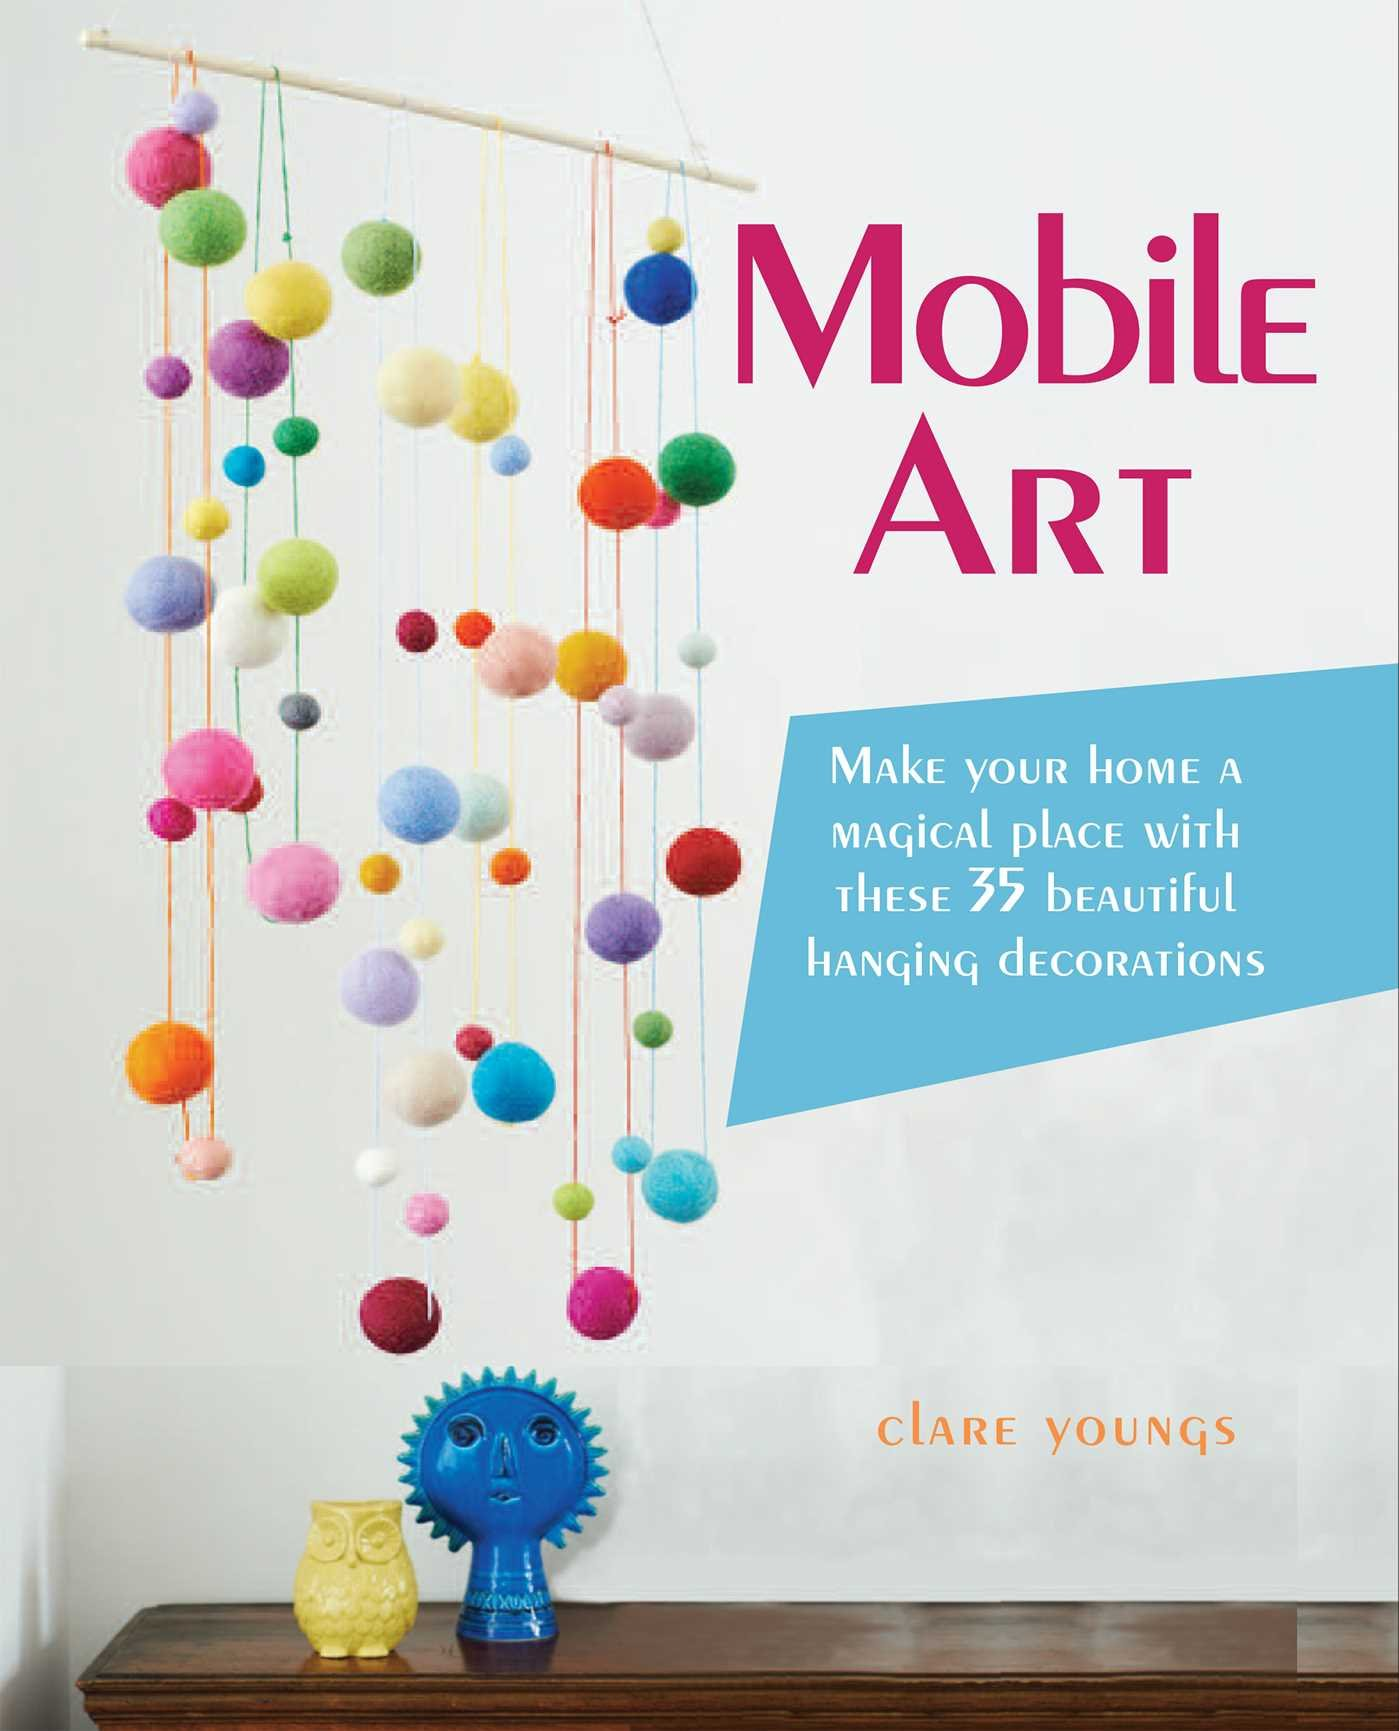 Mobile Art Make Your Home A Magical Place With These 35 Beautiful Hanging Decorations Clare Youngs 9781782492092 Amazon Com Books